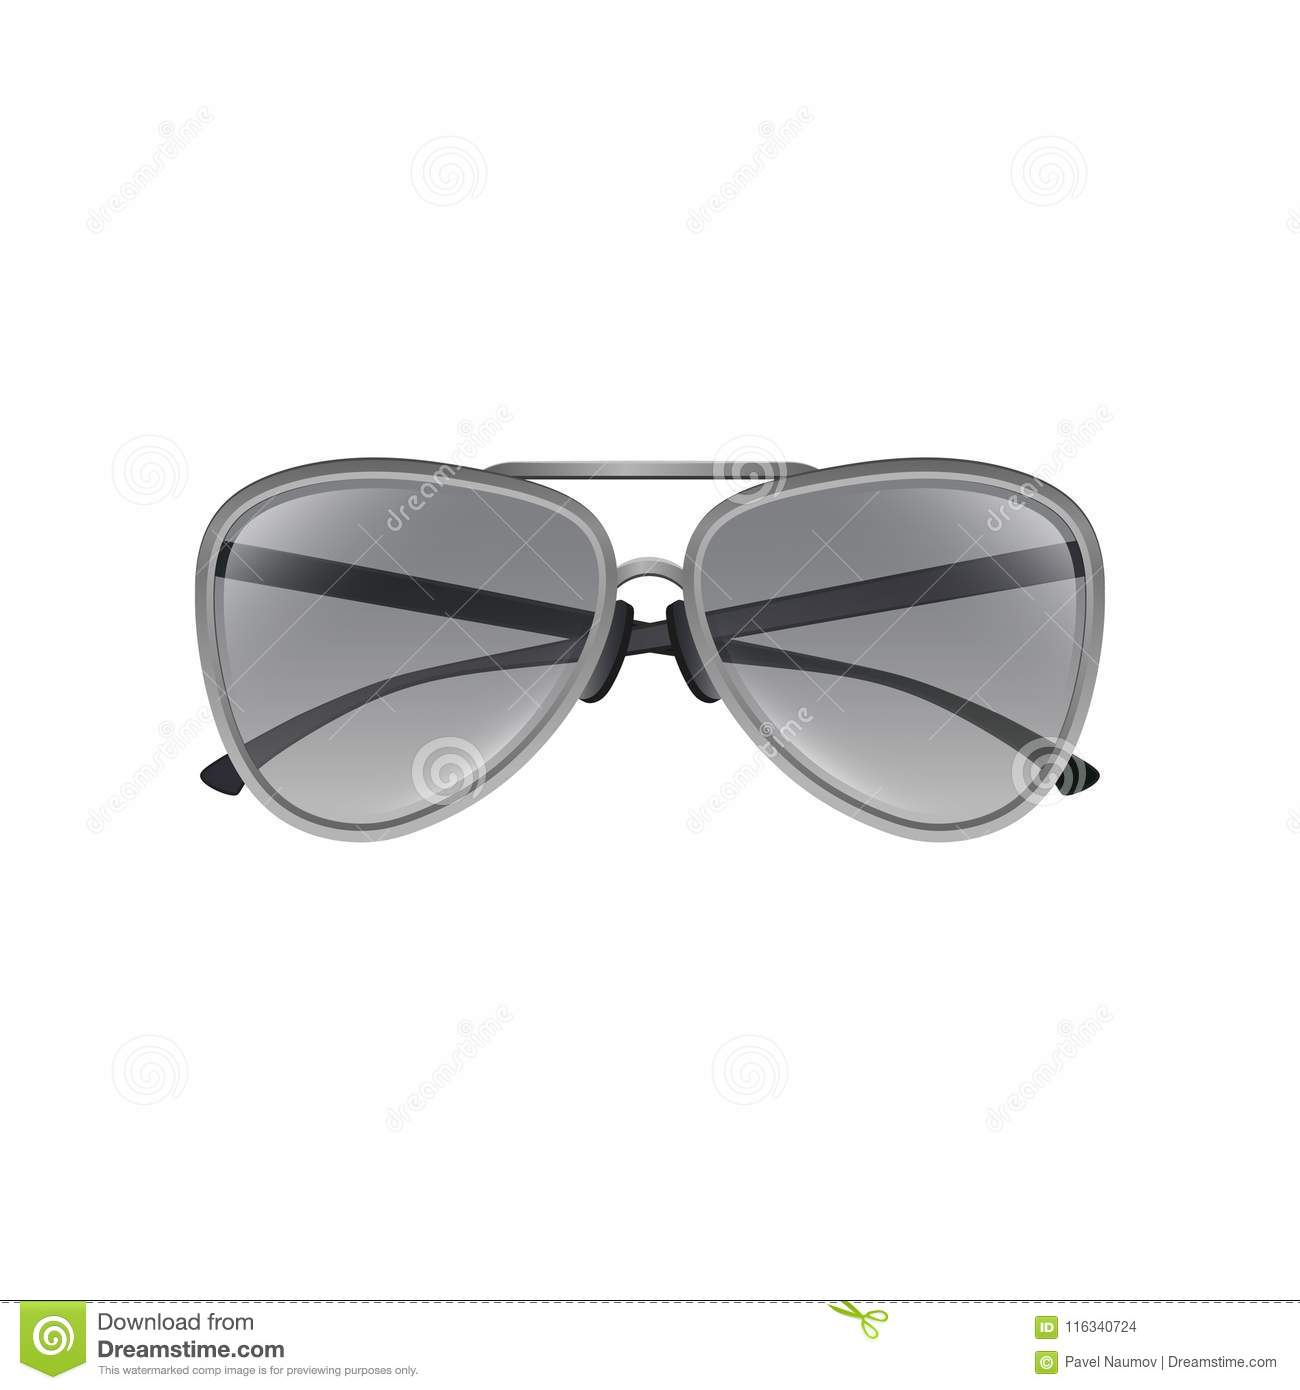 205d3285aa Aviator Sunglasses With Gray Tinted Lenses